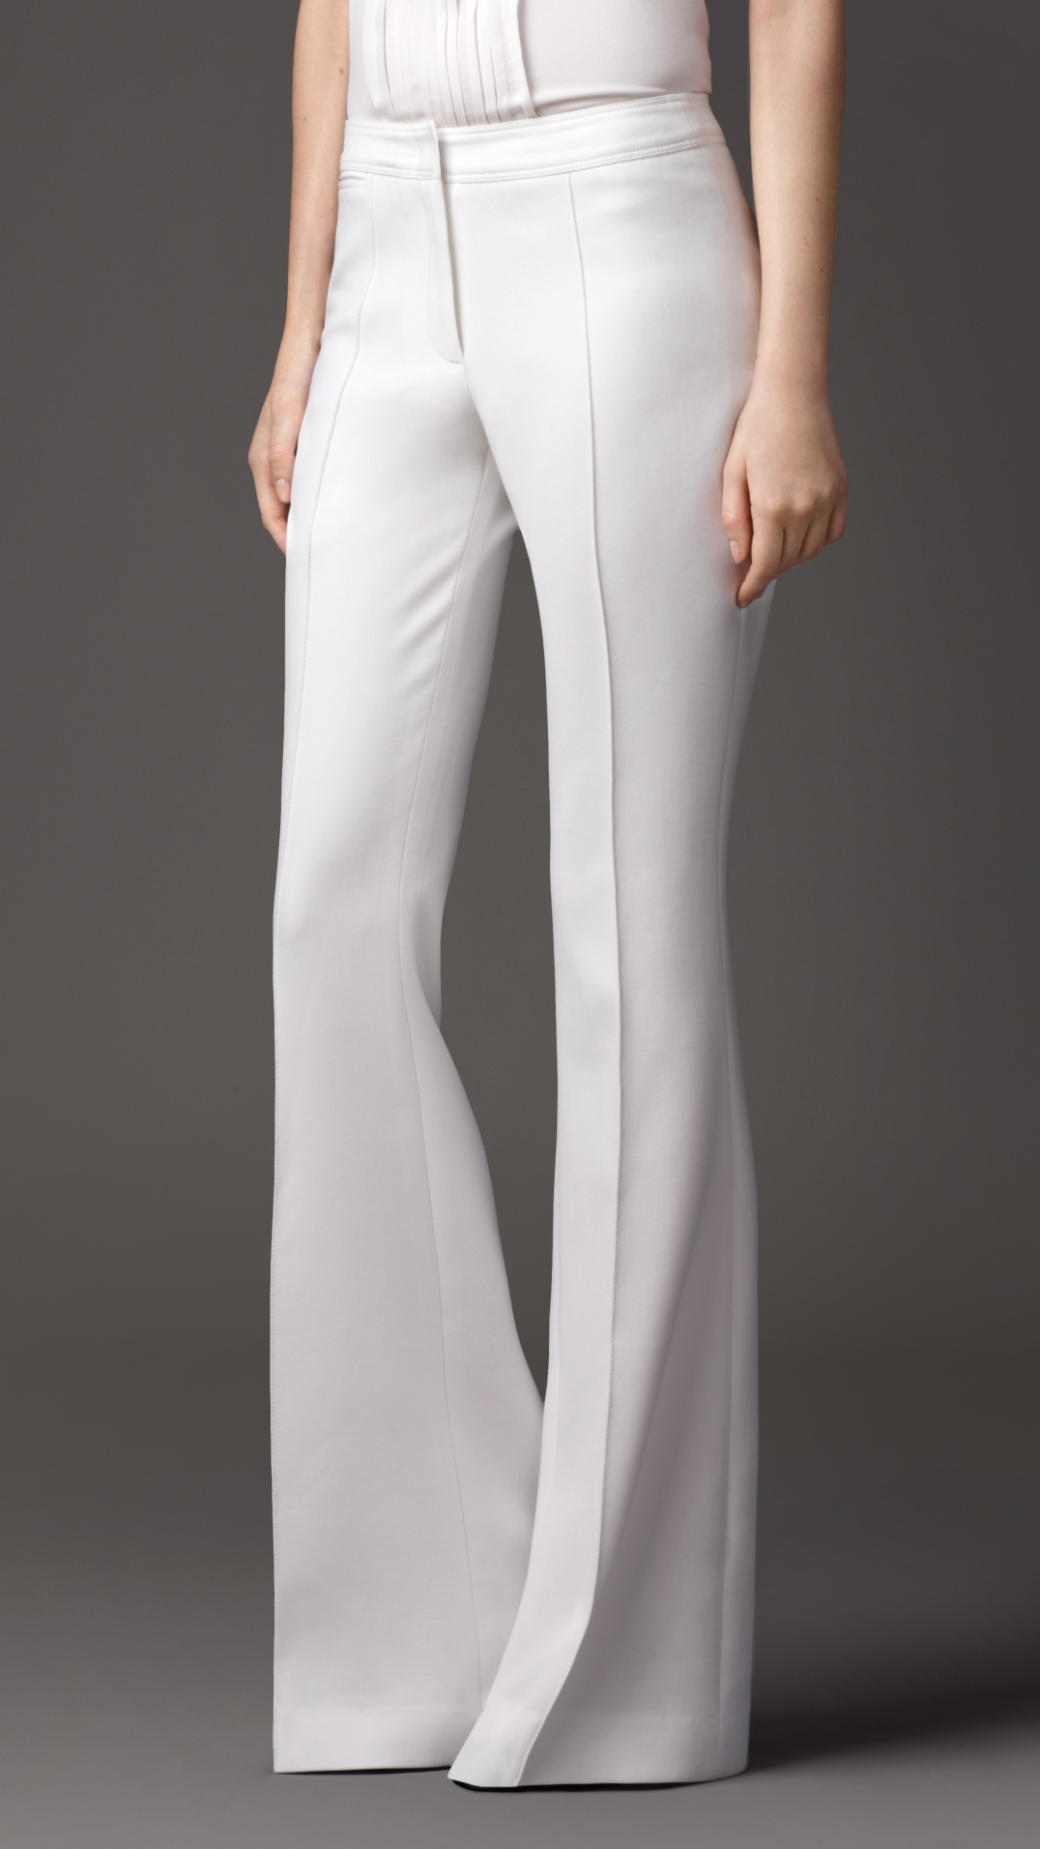 Burberry Tailored Flared Trousers in White